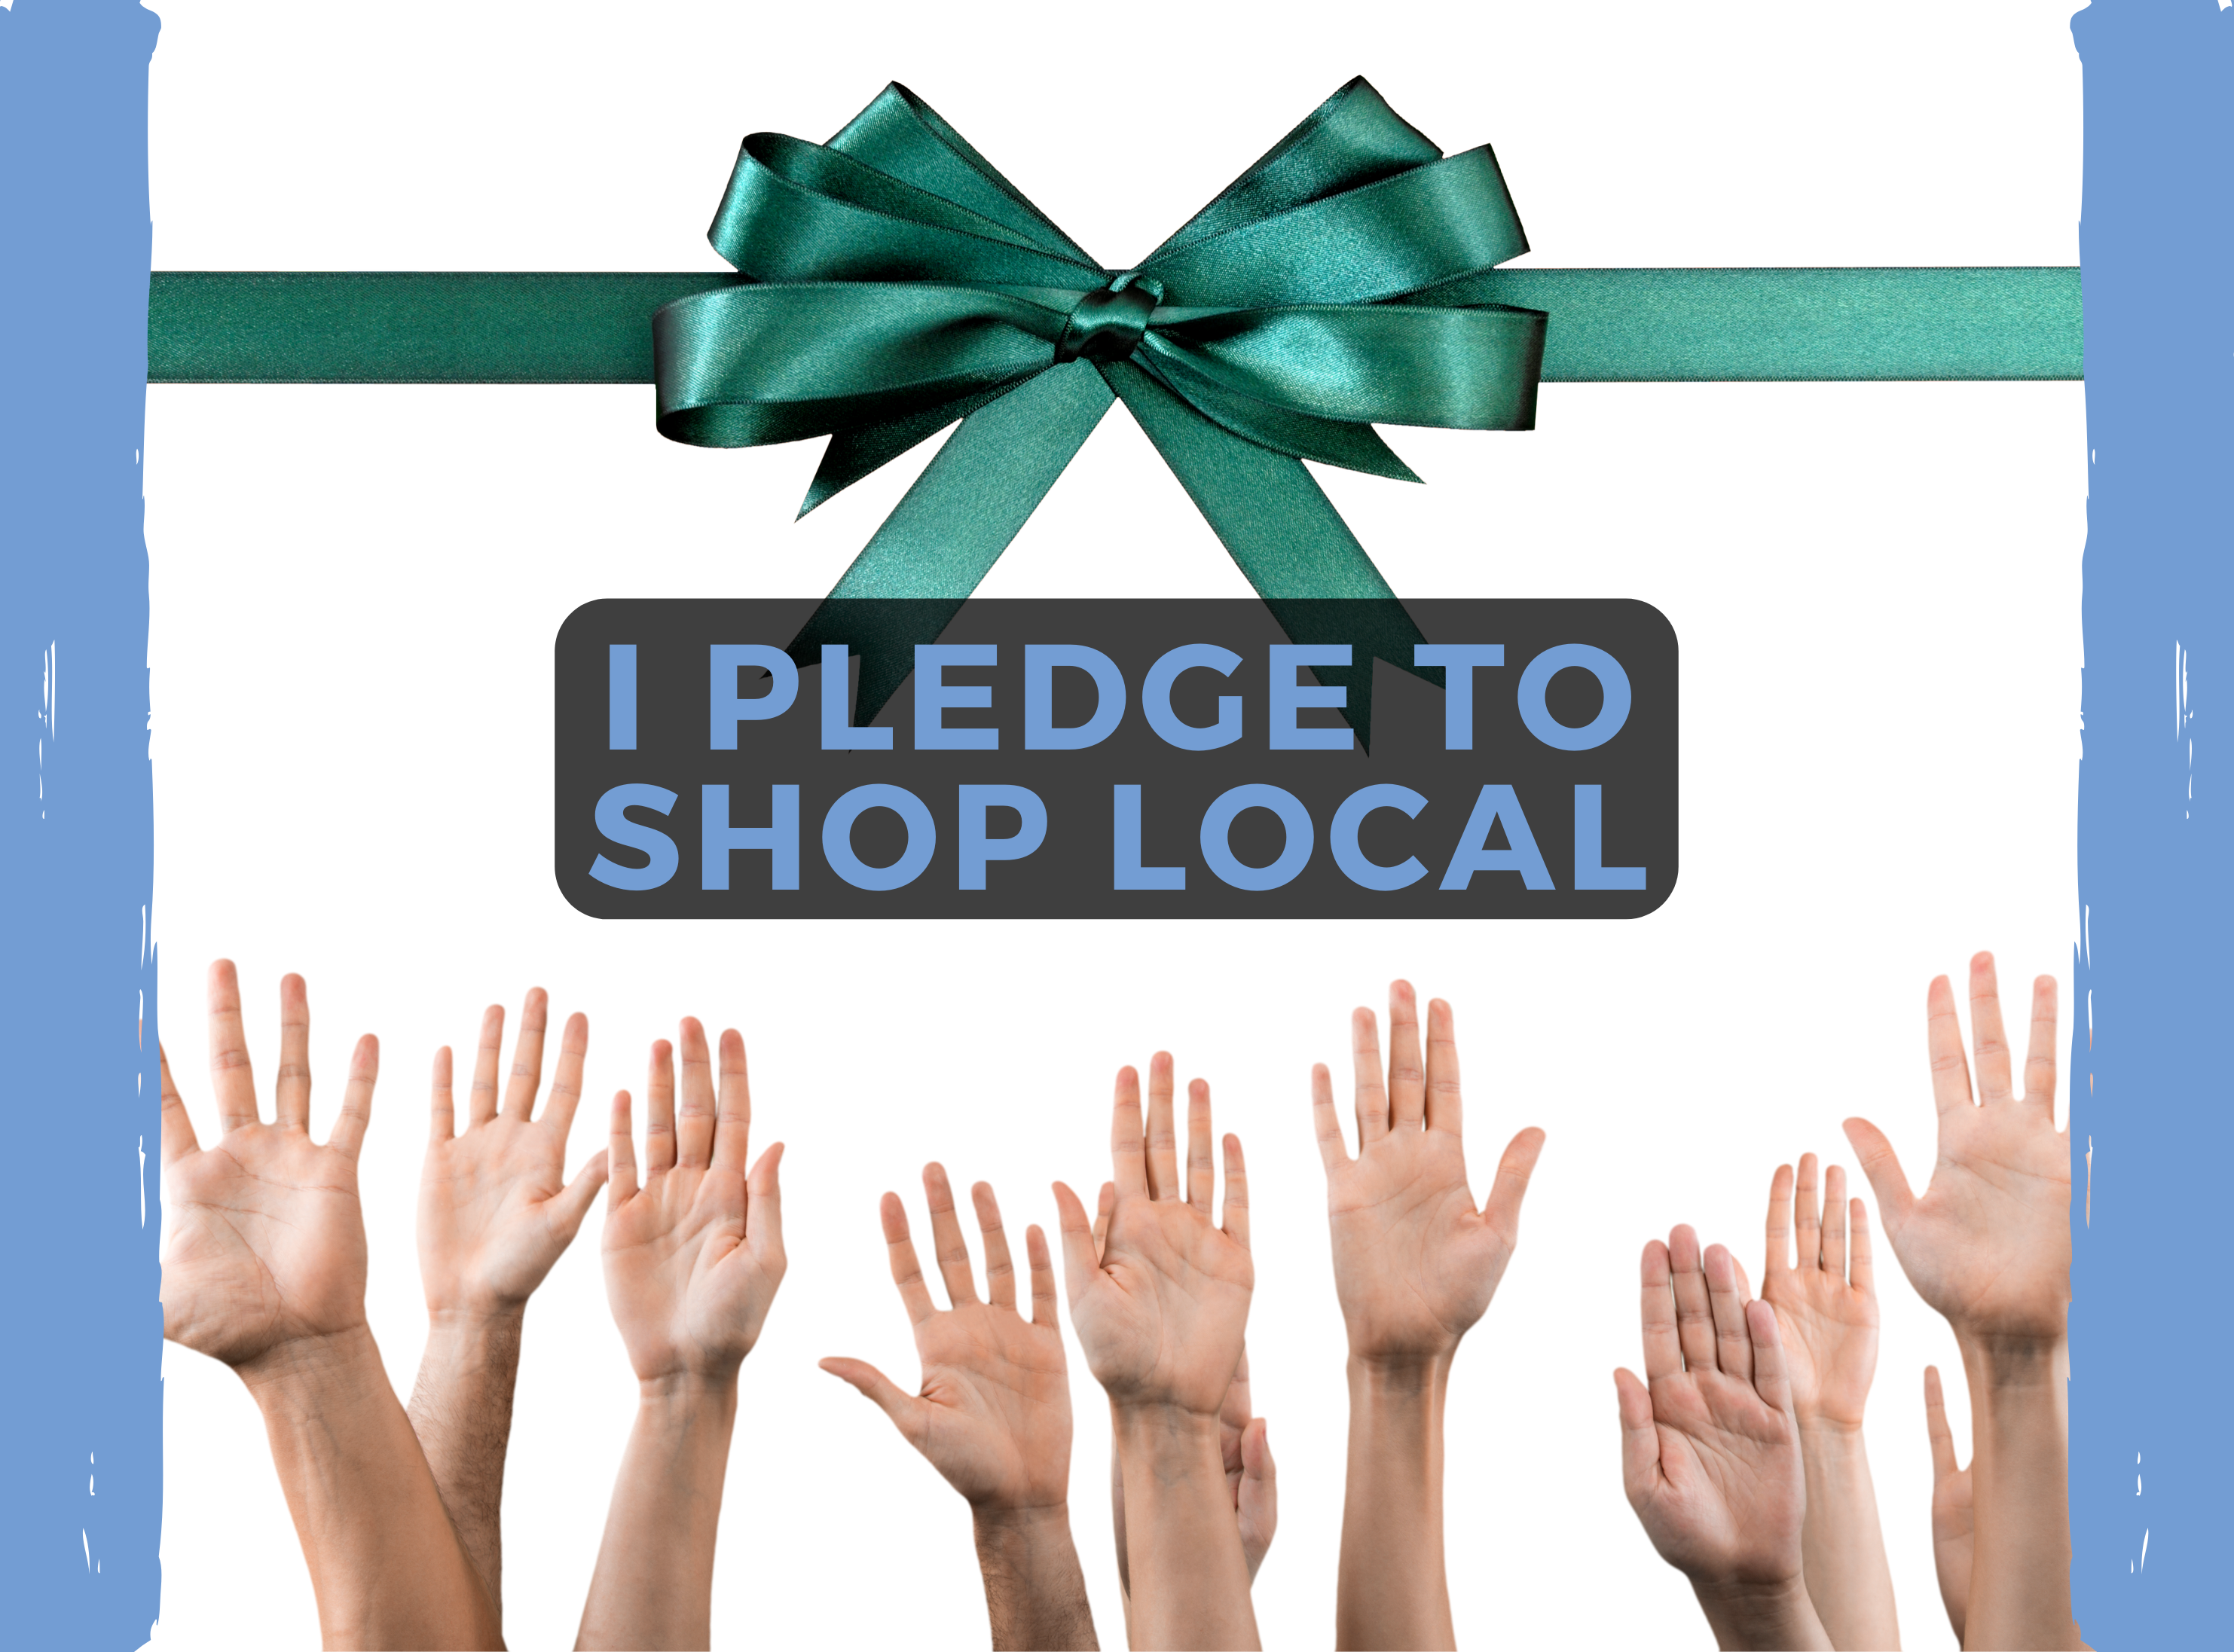 Why pledge to shop local?